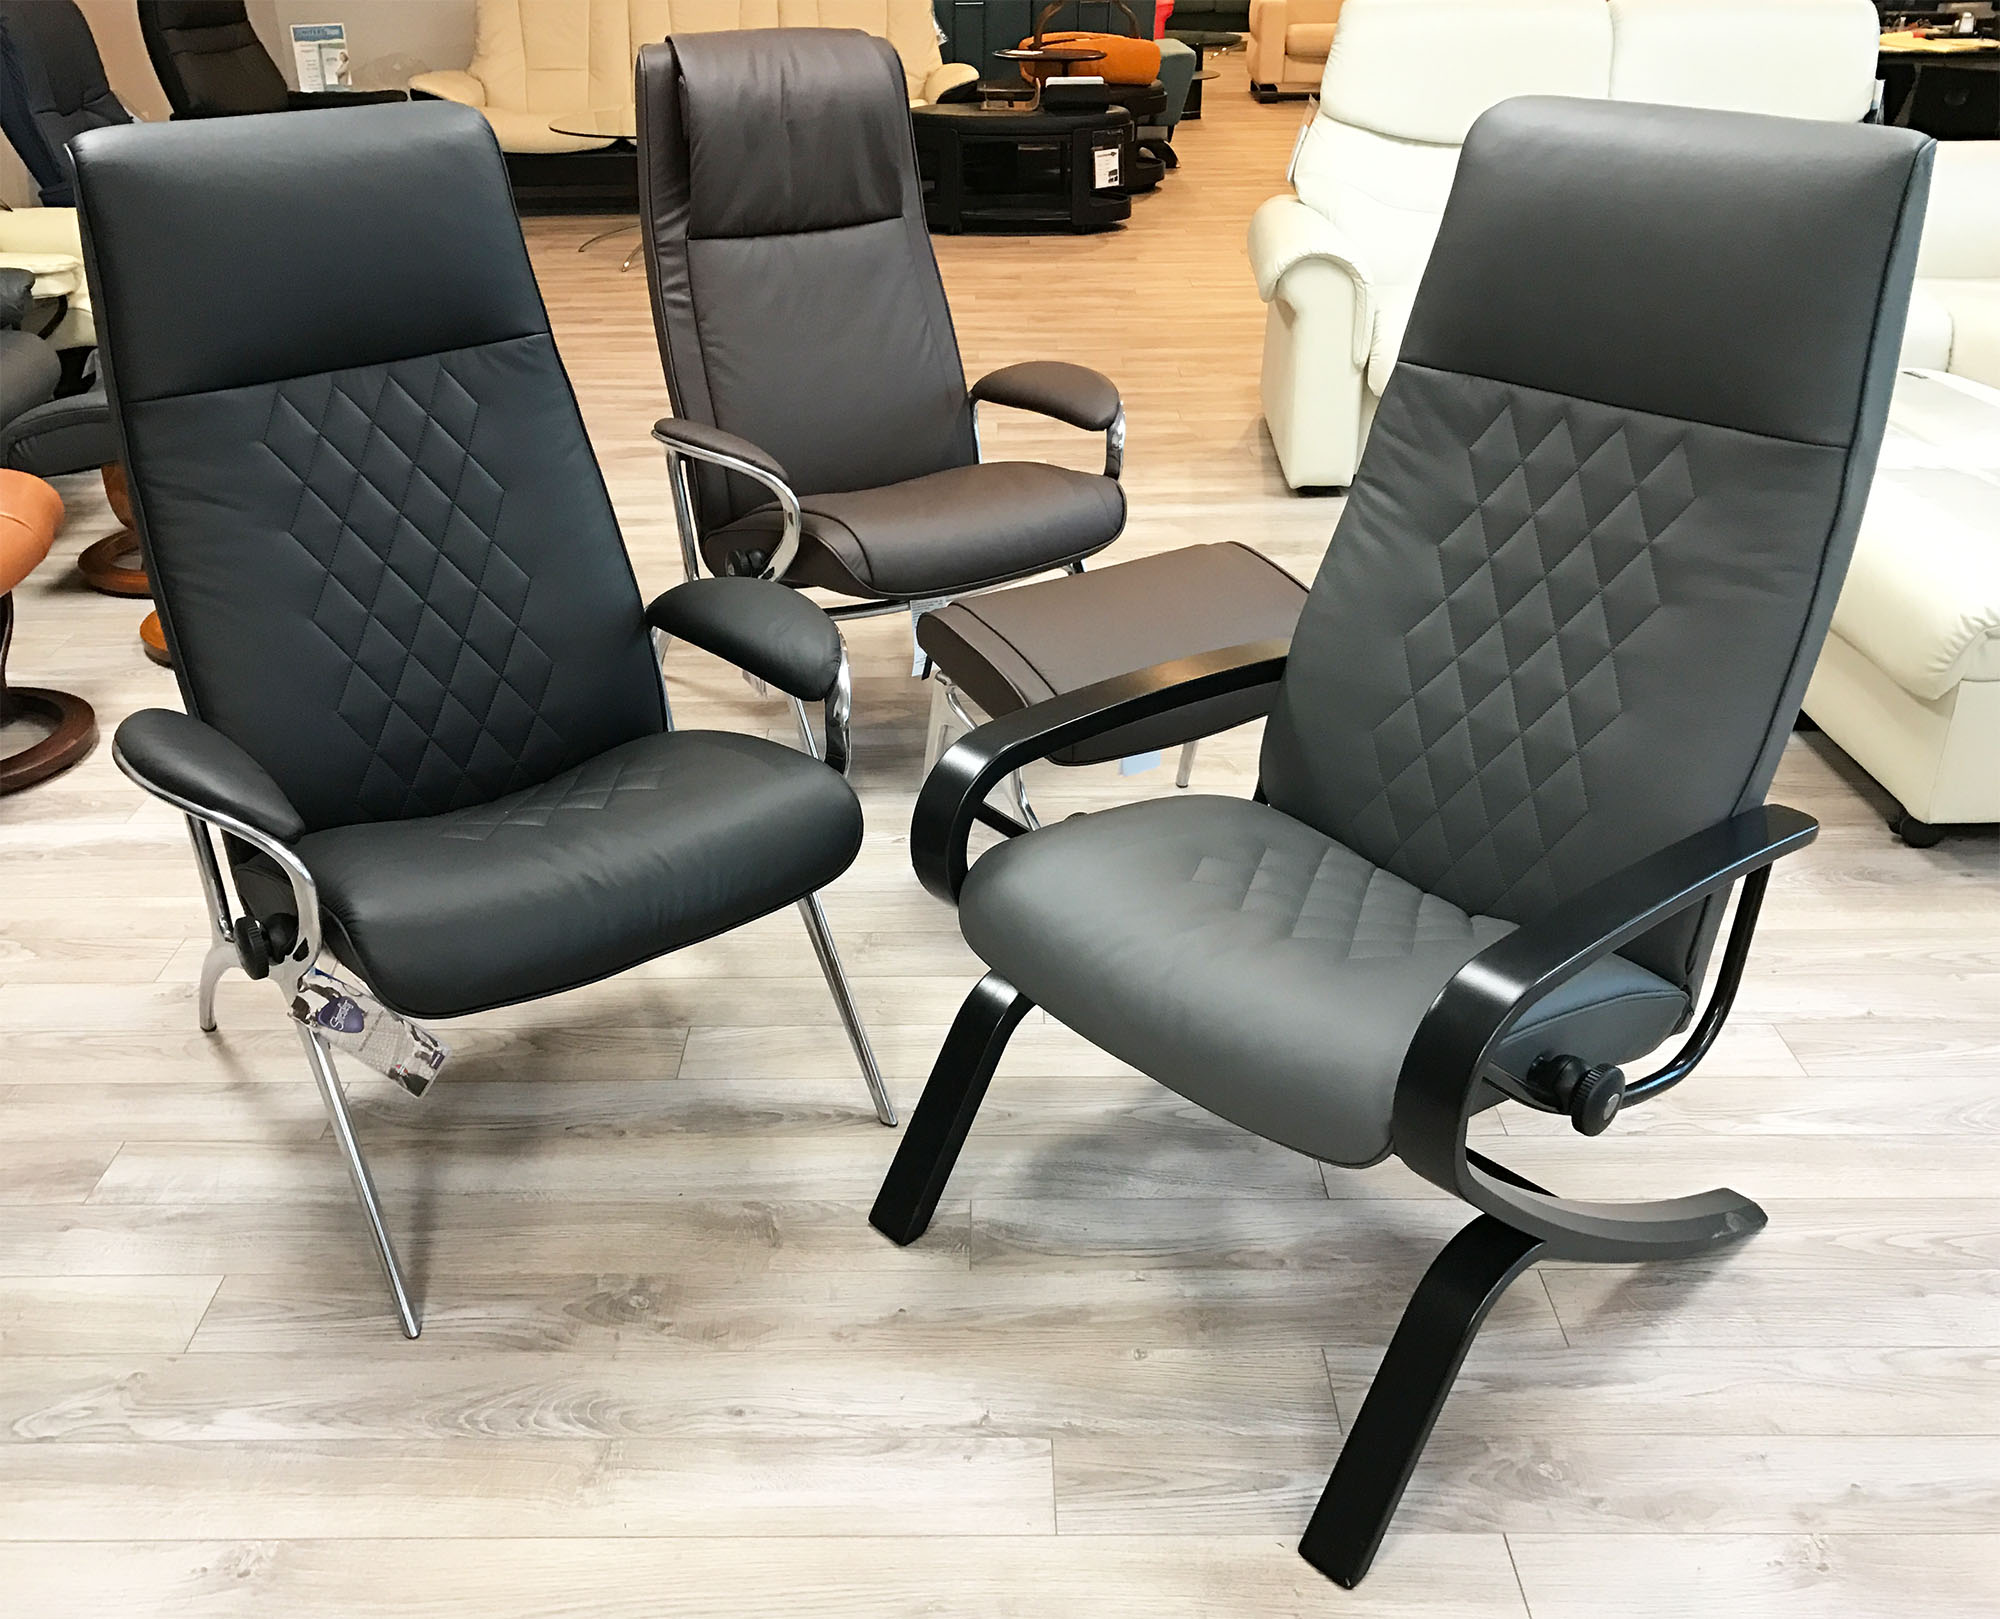 stressless you james aluminum recliner chair in batick brown leather recliner chair and ottoman. Black Bedroom Furniture Sets. Home Design Ideas